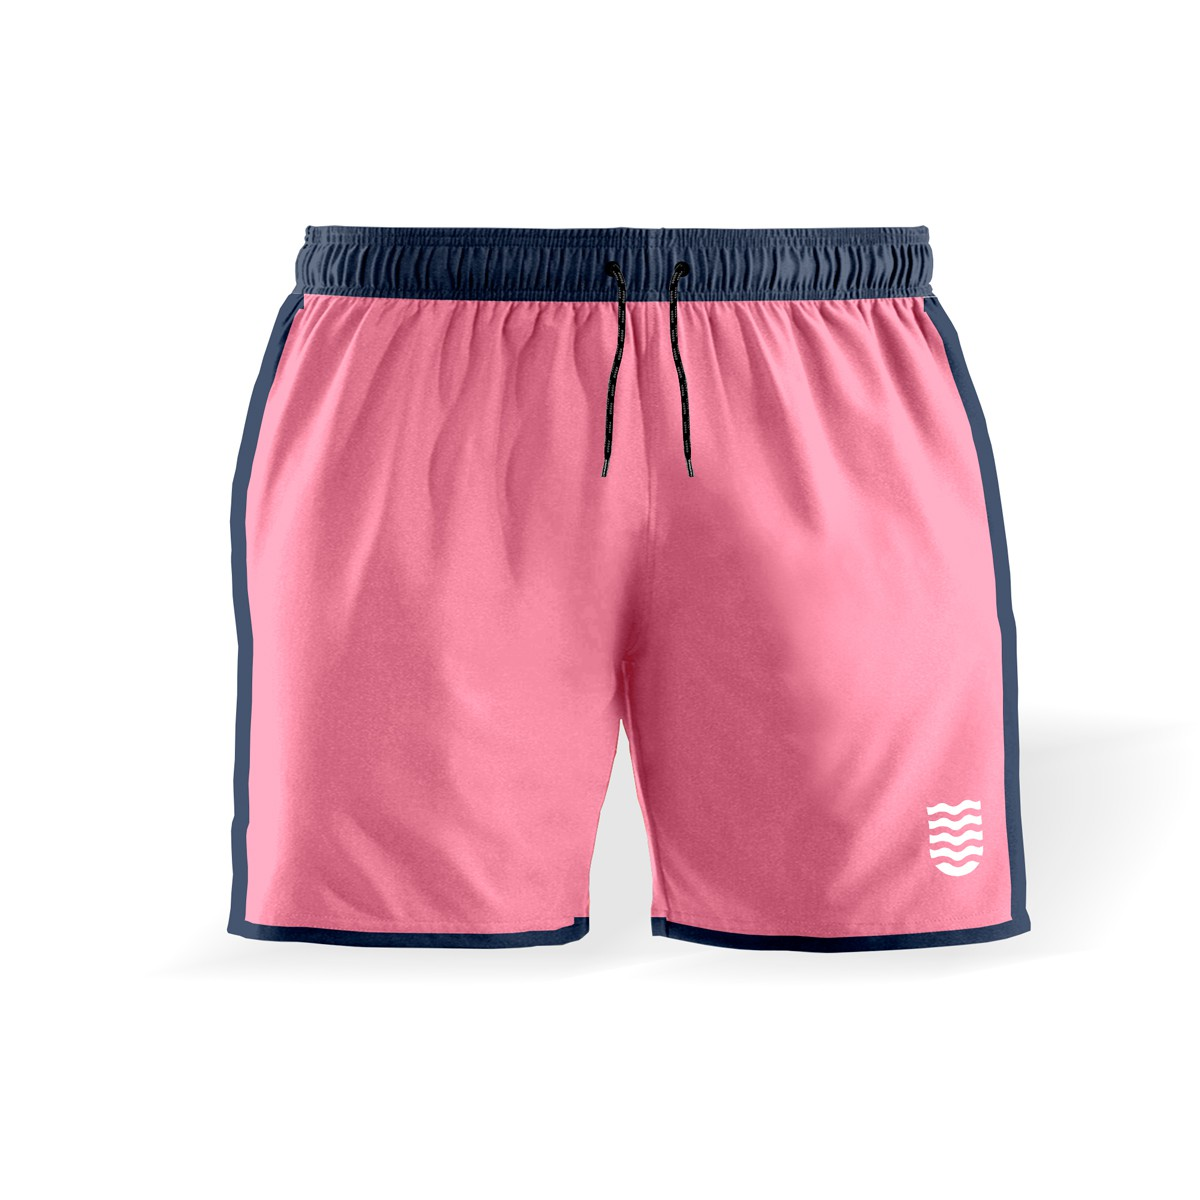 Shorts Masculino Wss Colors Orchid